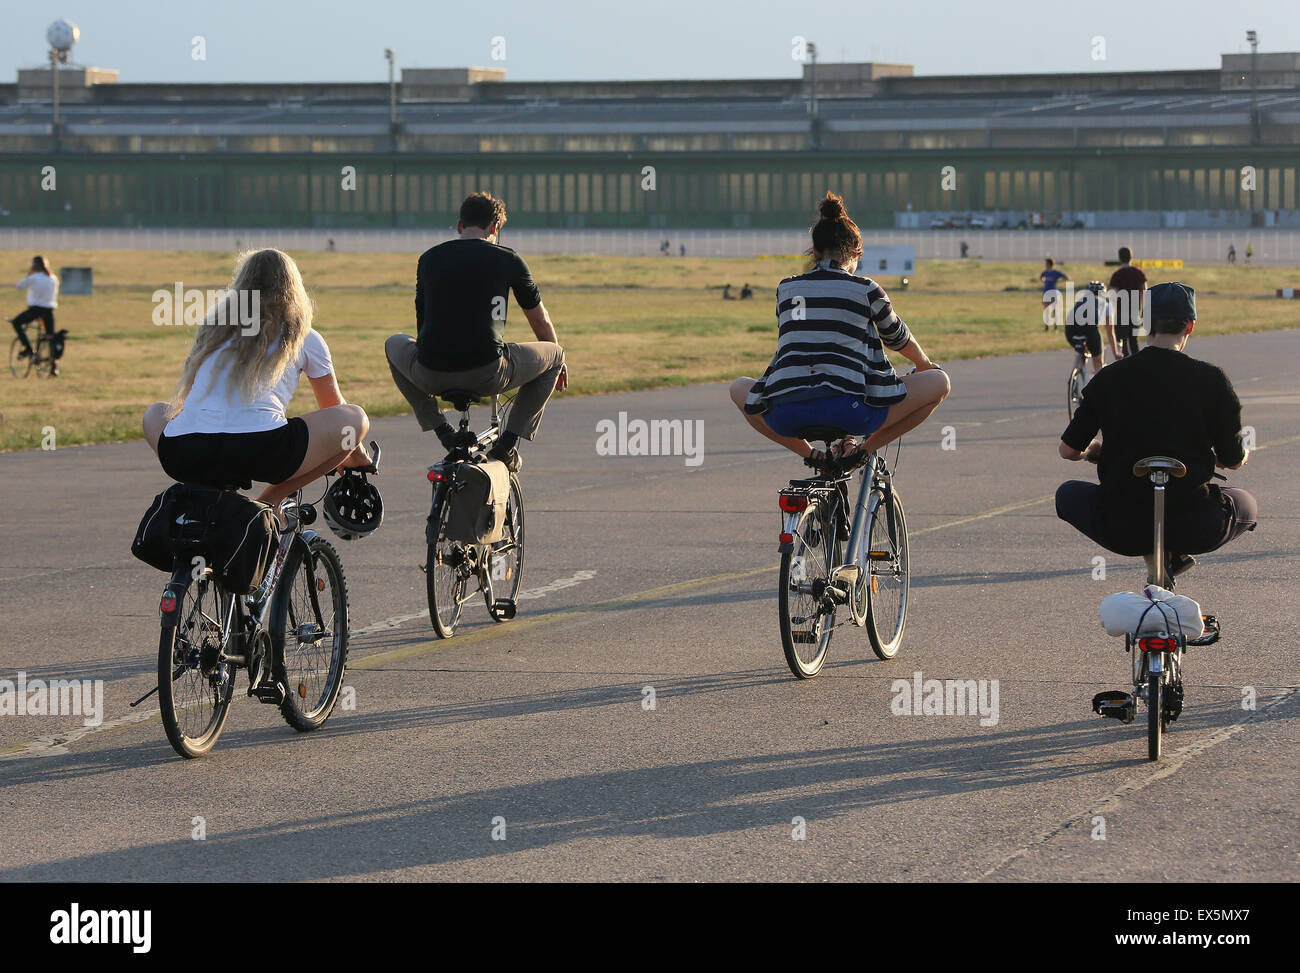 Participants of a YogaCycling course excercise on the Tempelhofer Feld in Berlin, Germany, 11 June 2015. YogaCycling - Stock Image